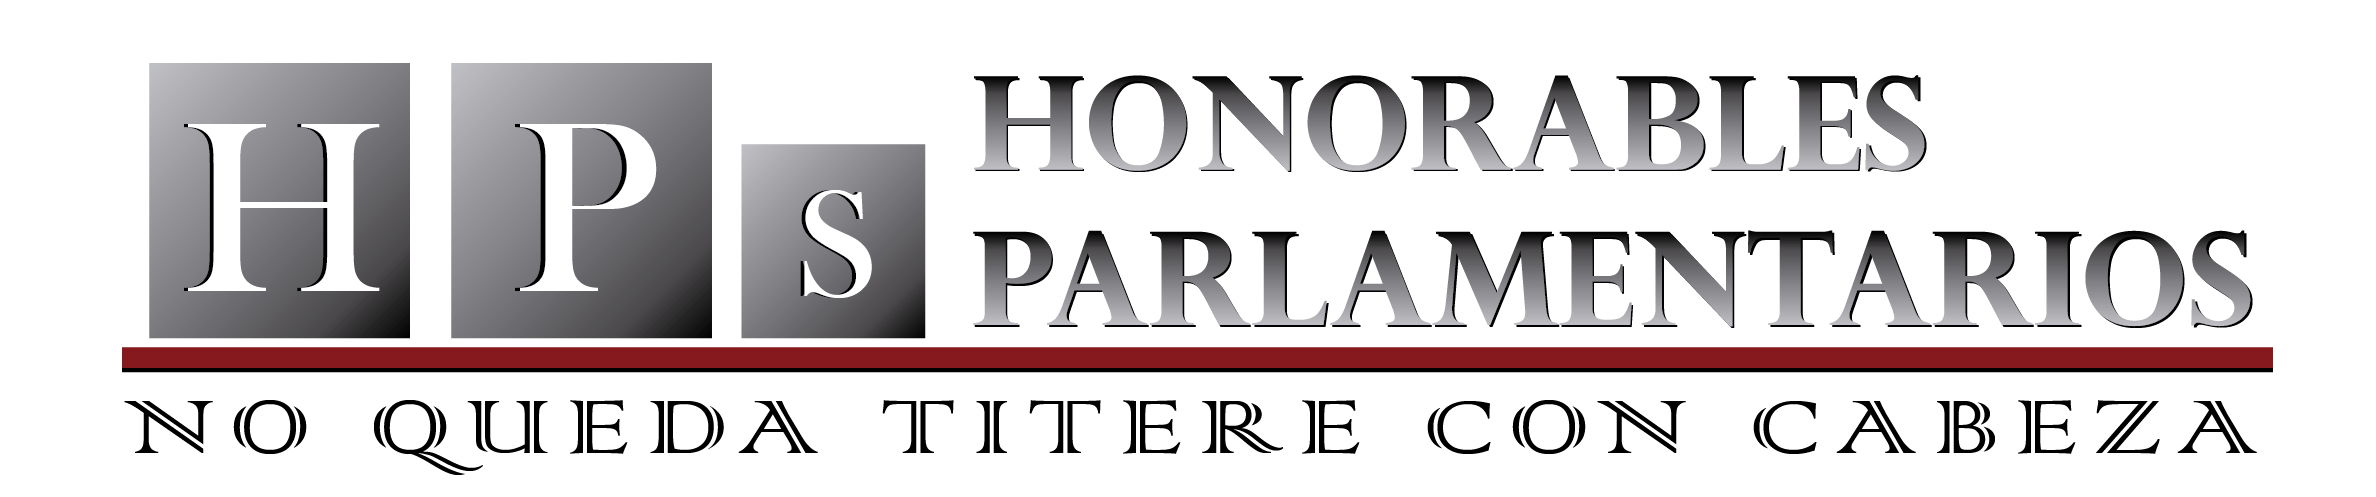 Honorables Parlamentarios